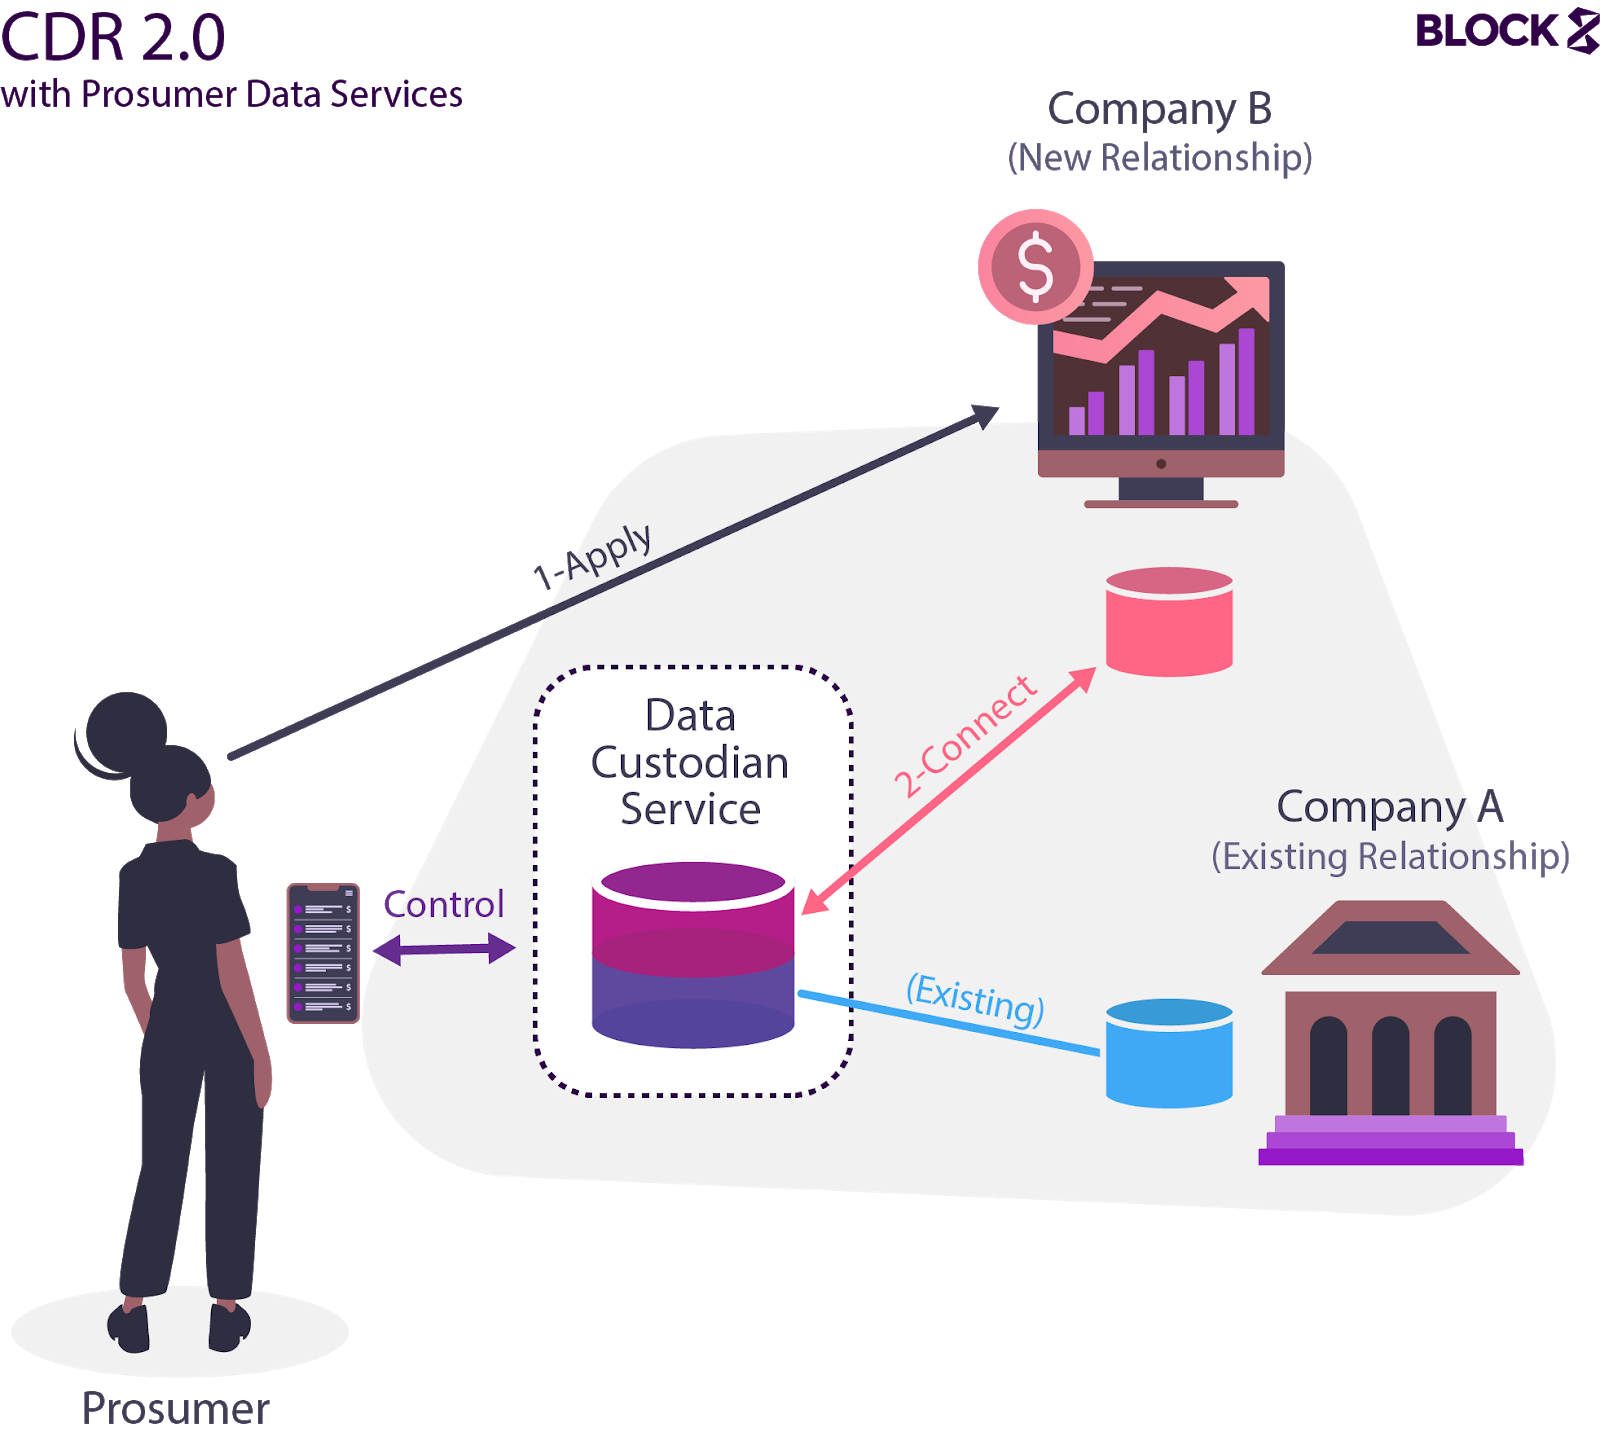 Conceptual model of a future implementation of the Consumer Data Right including third party data management services